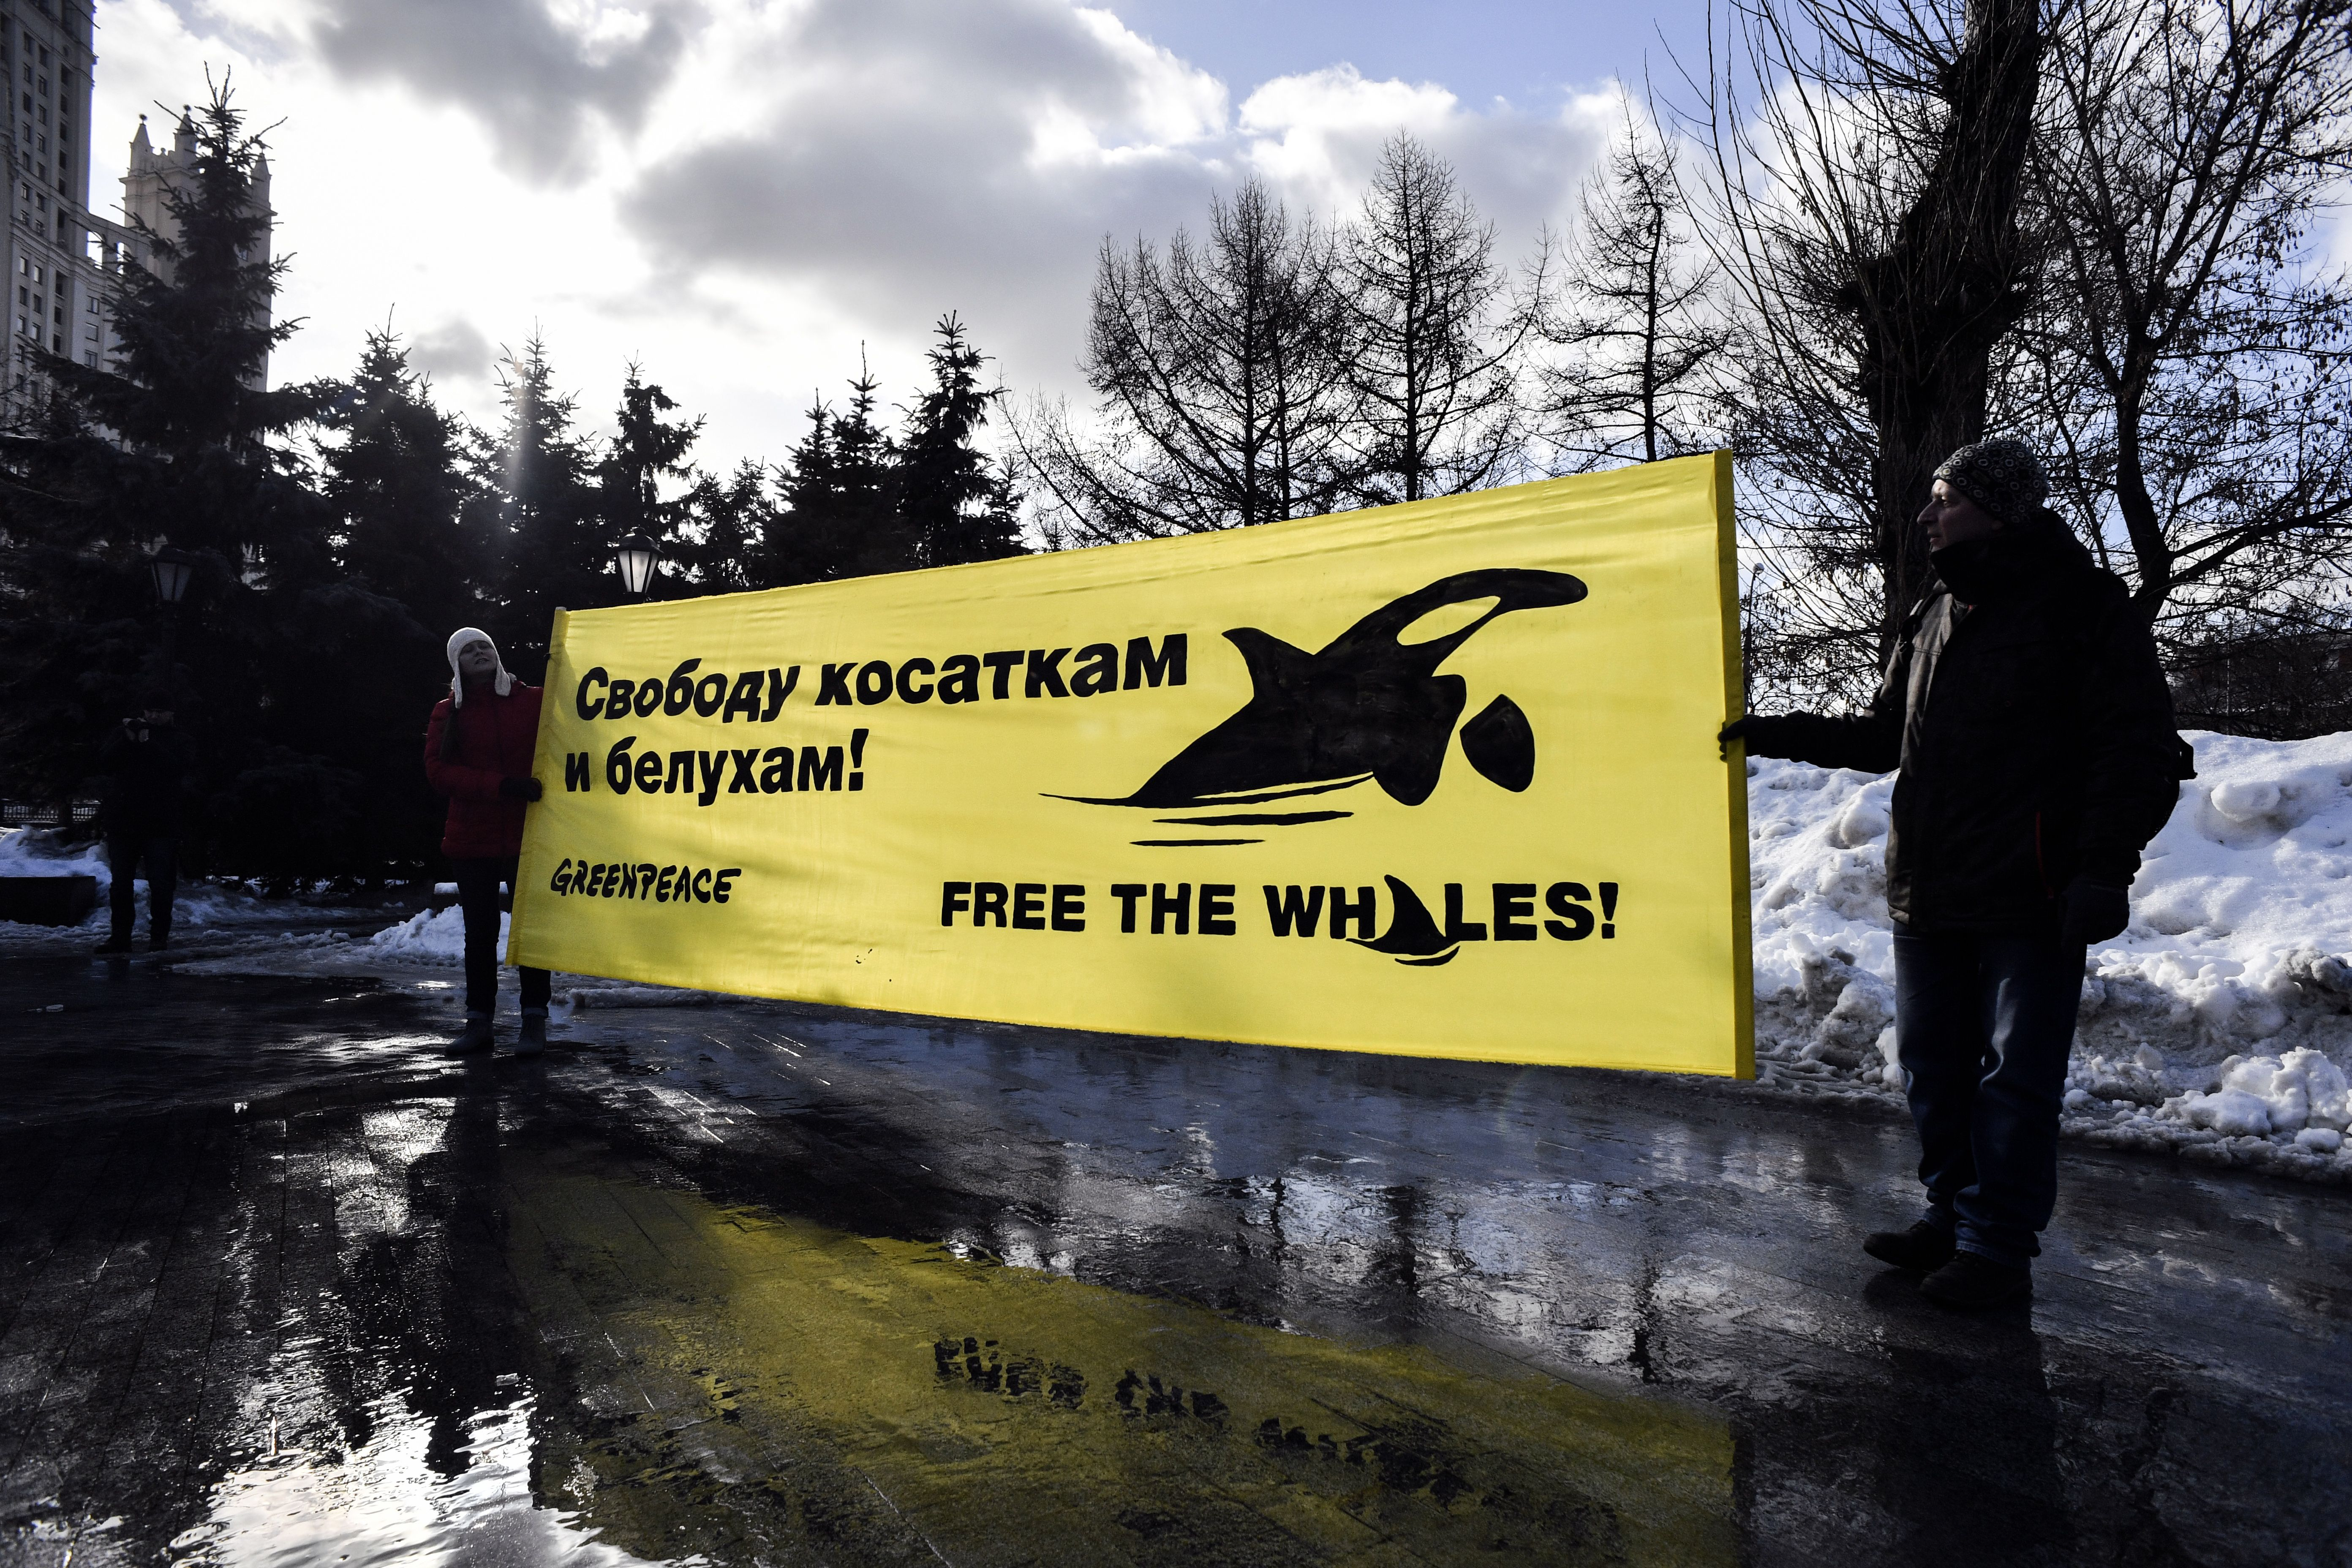 Greenpeace activists and supporters rally in Moscow on February 16, 2019, demanding the release of orcas and white whales held at a holding facility in the town of Nakhodka (Source: ALEXANDER NEMENOV/AFP/Getty Images)